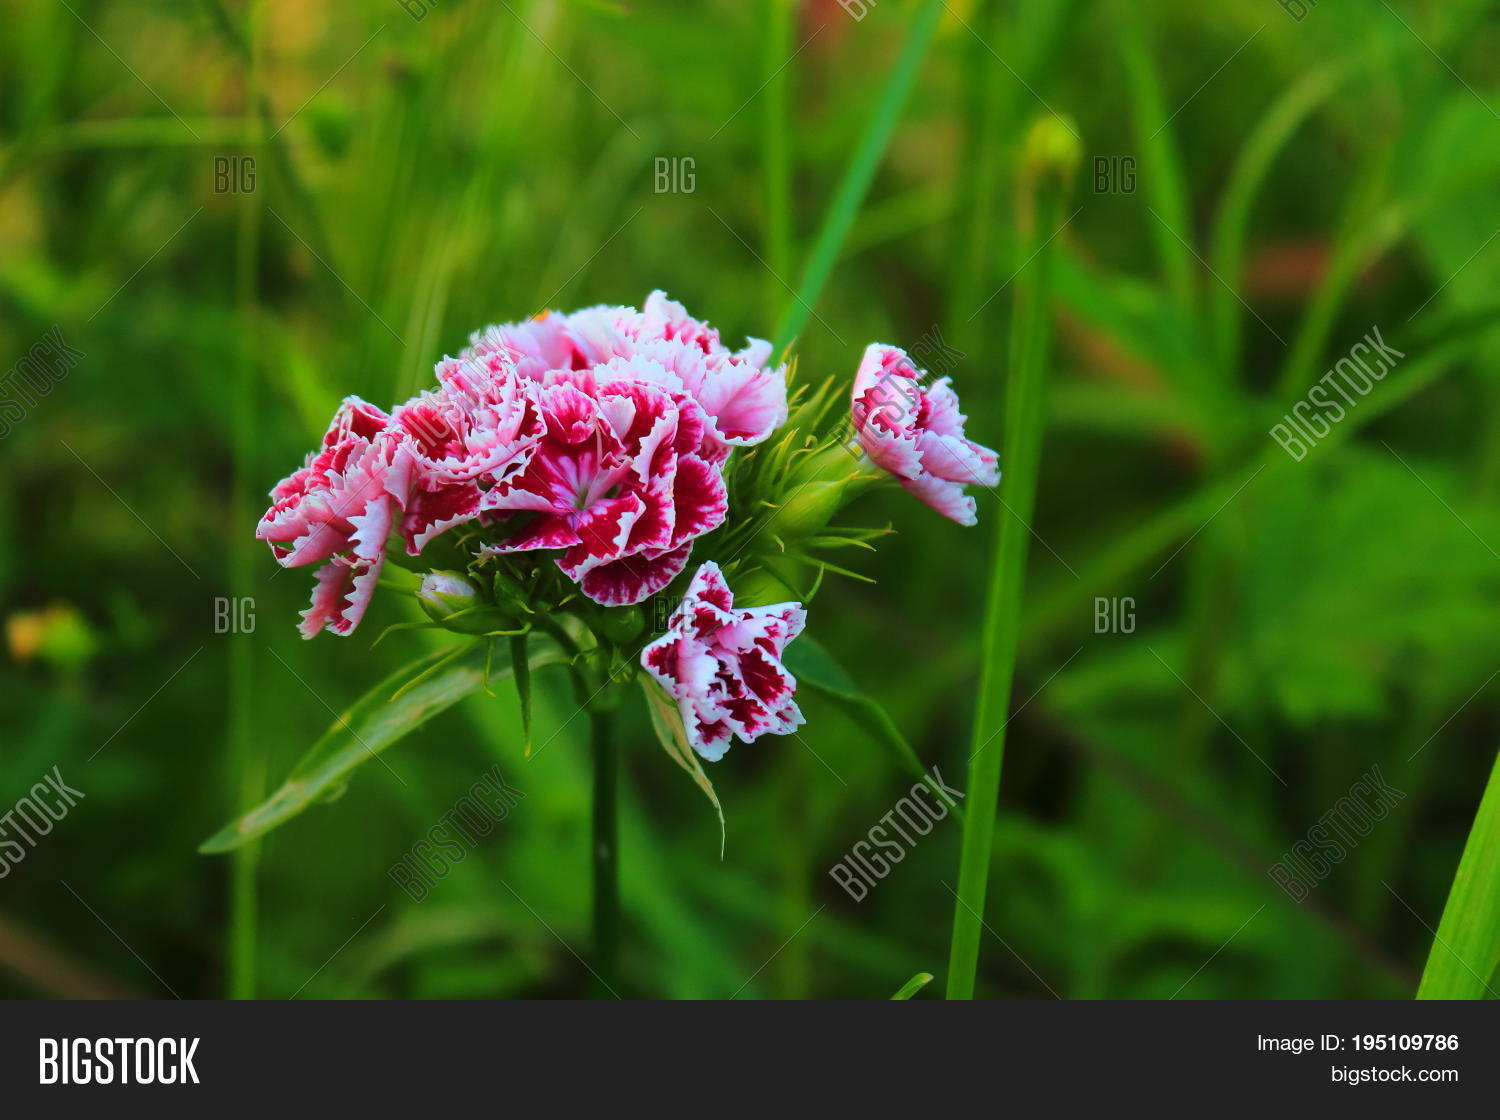 Carnation On Meadow Image Photo Free Trial Bigstock